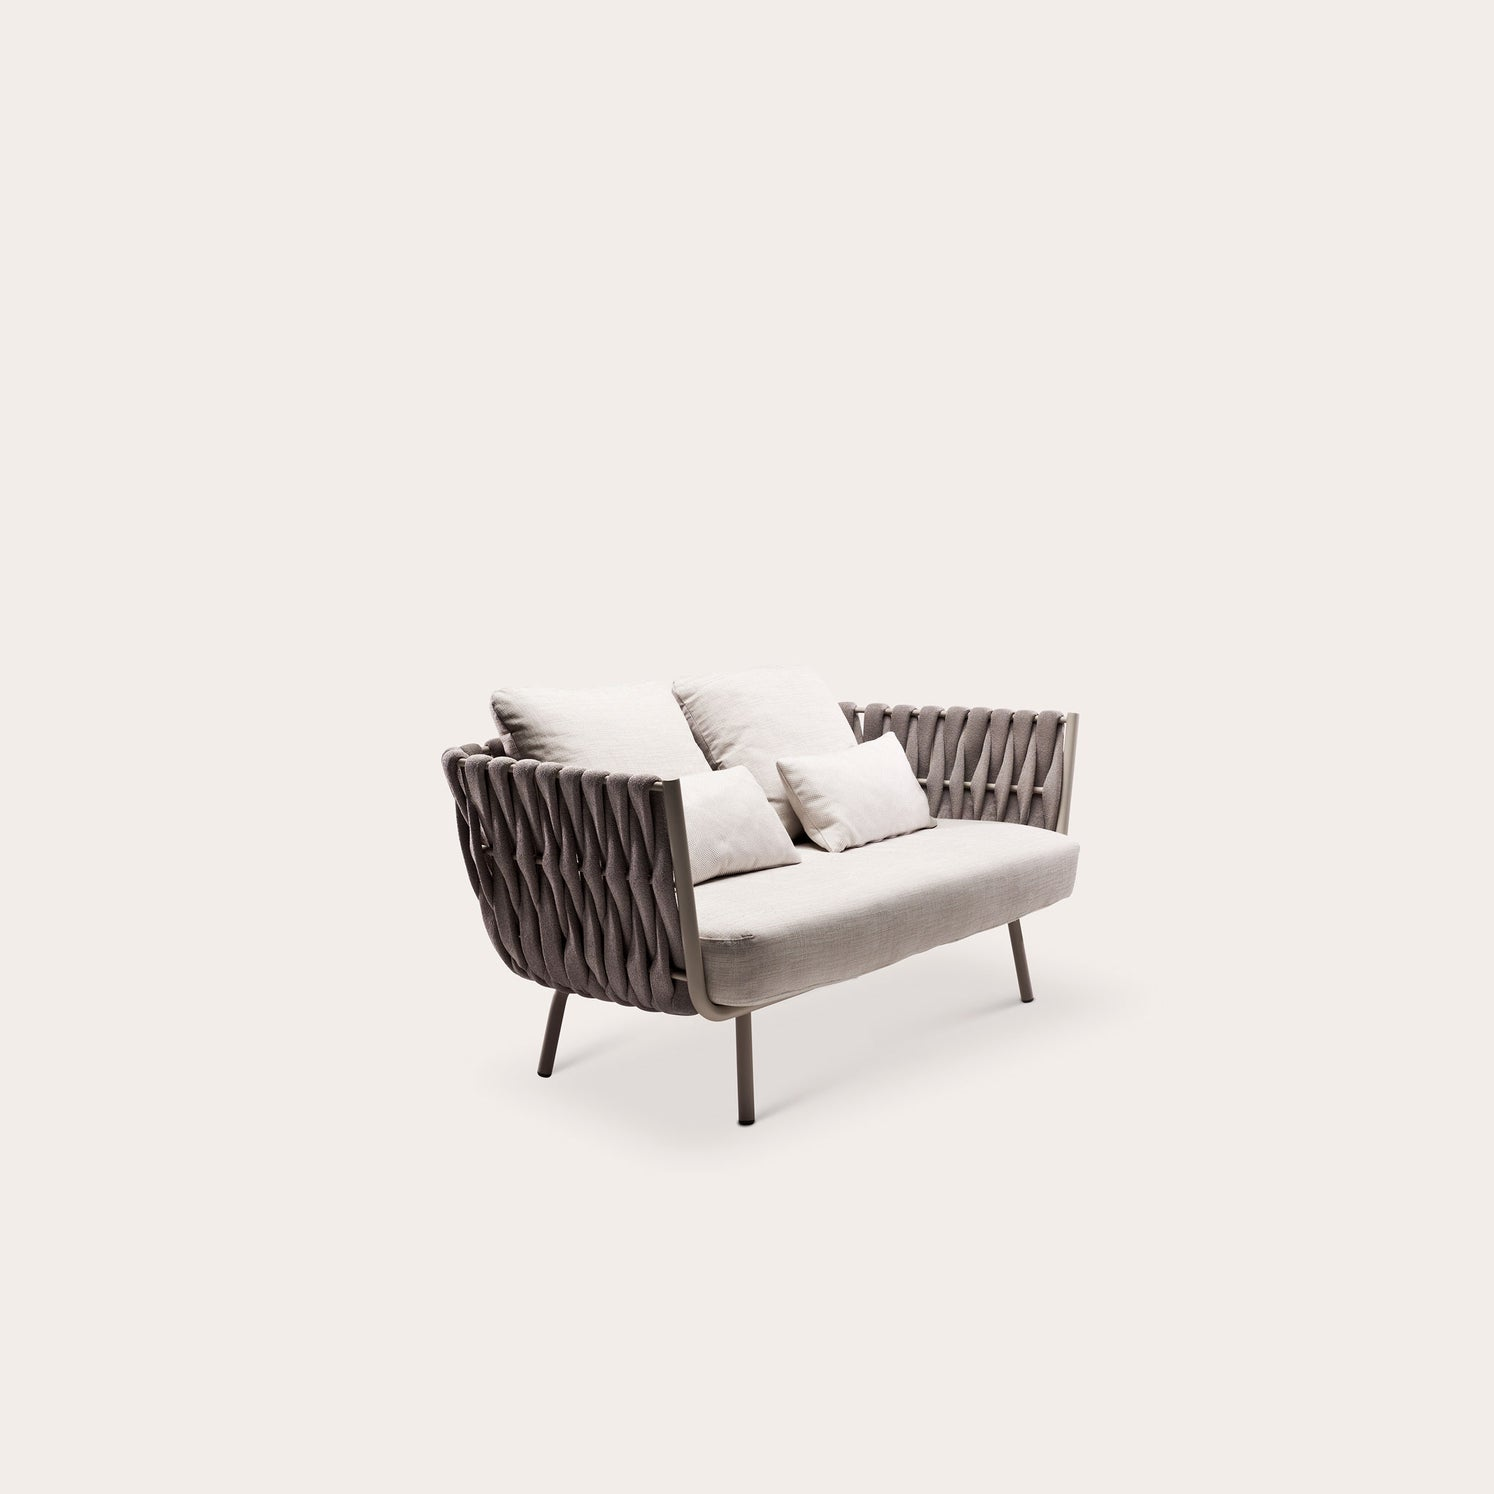 TOSCA Sofa (163cm) Outdoor Monica Armani Designer Furniture Sku: 007-200-10991